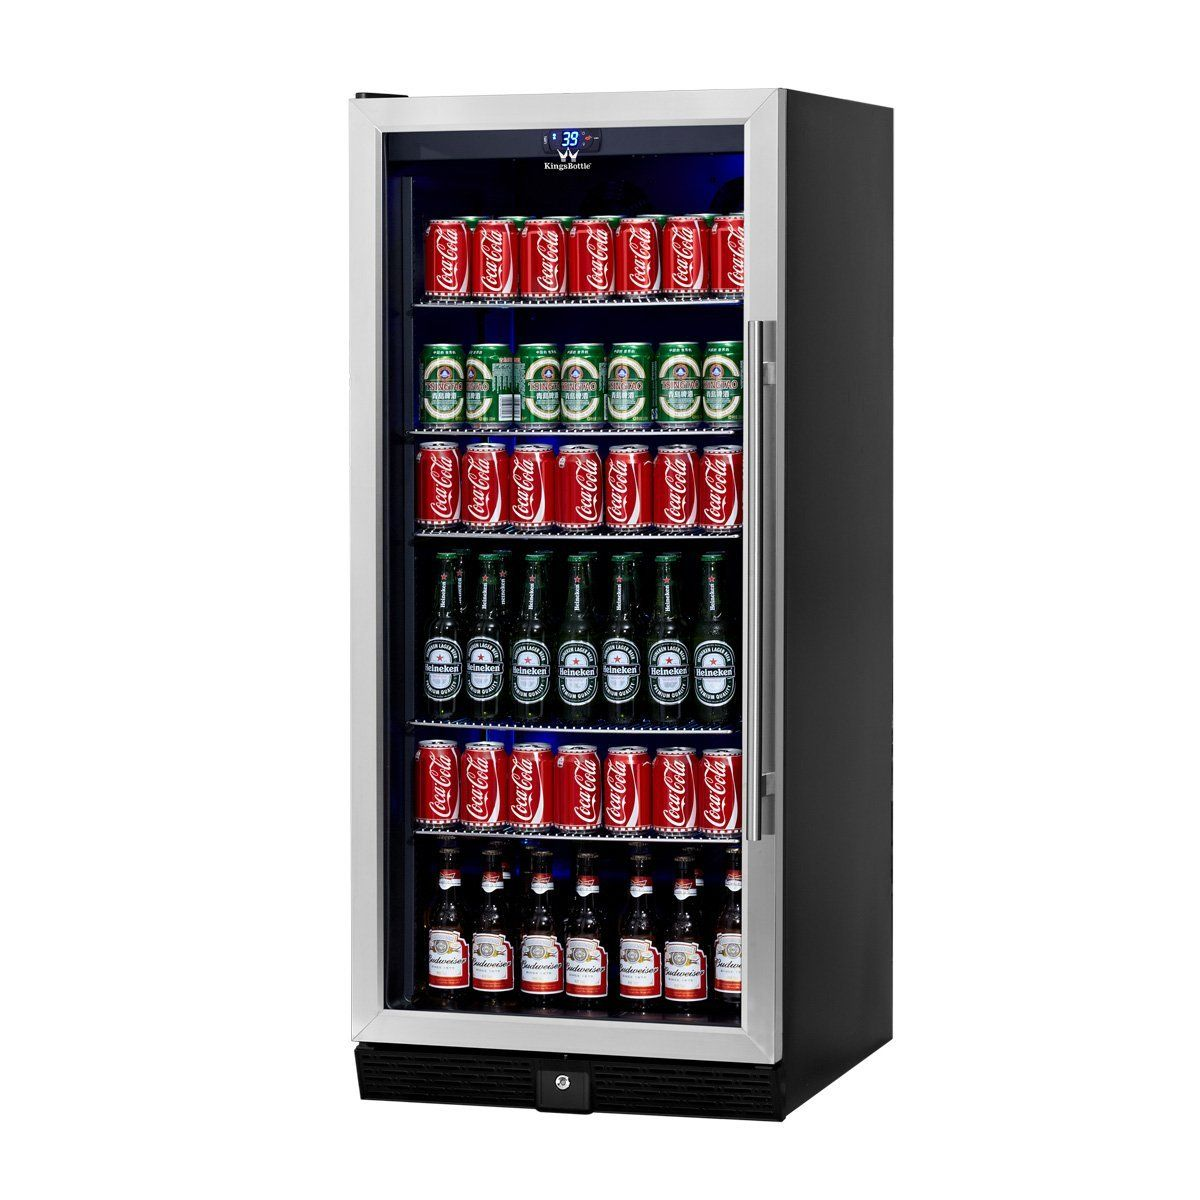 Kingsbottle 300 Can Beverage Cooler Stainless Steel With Glass